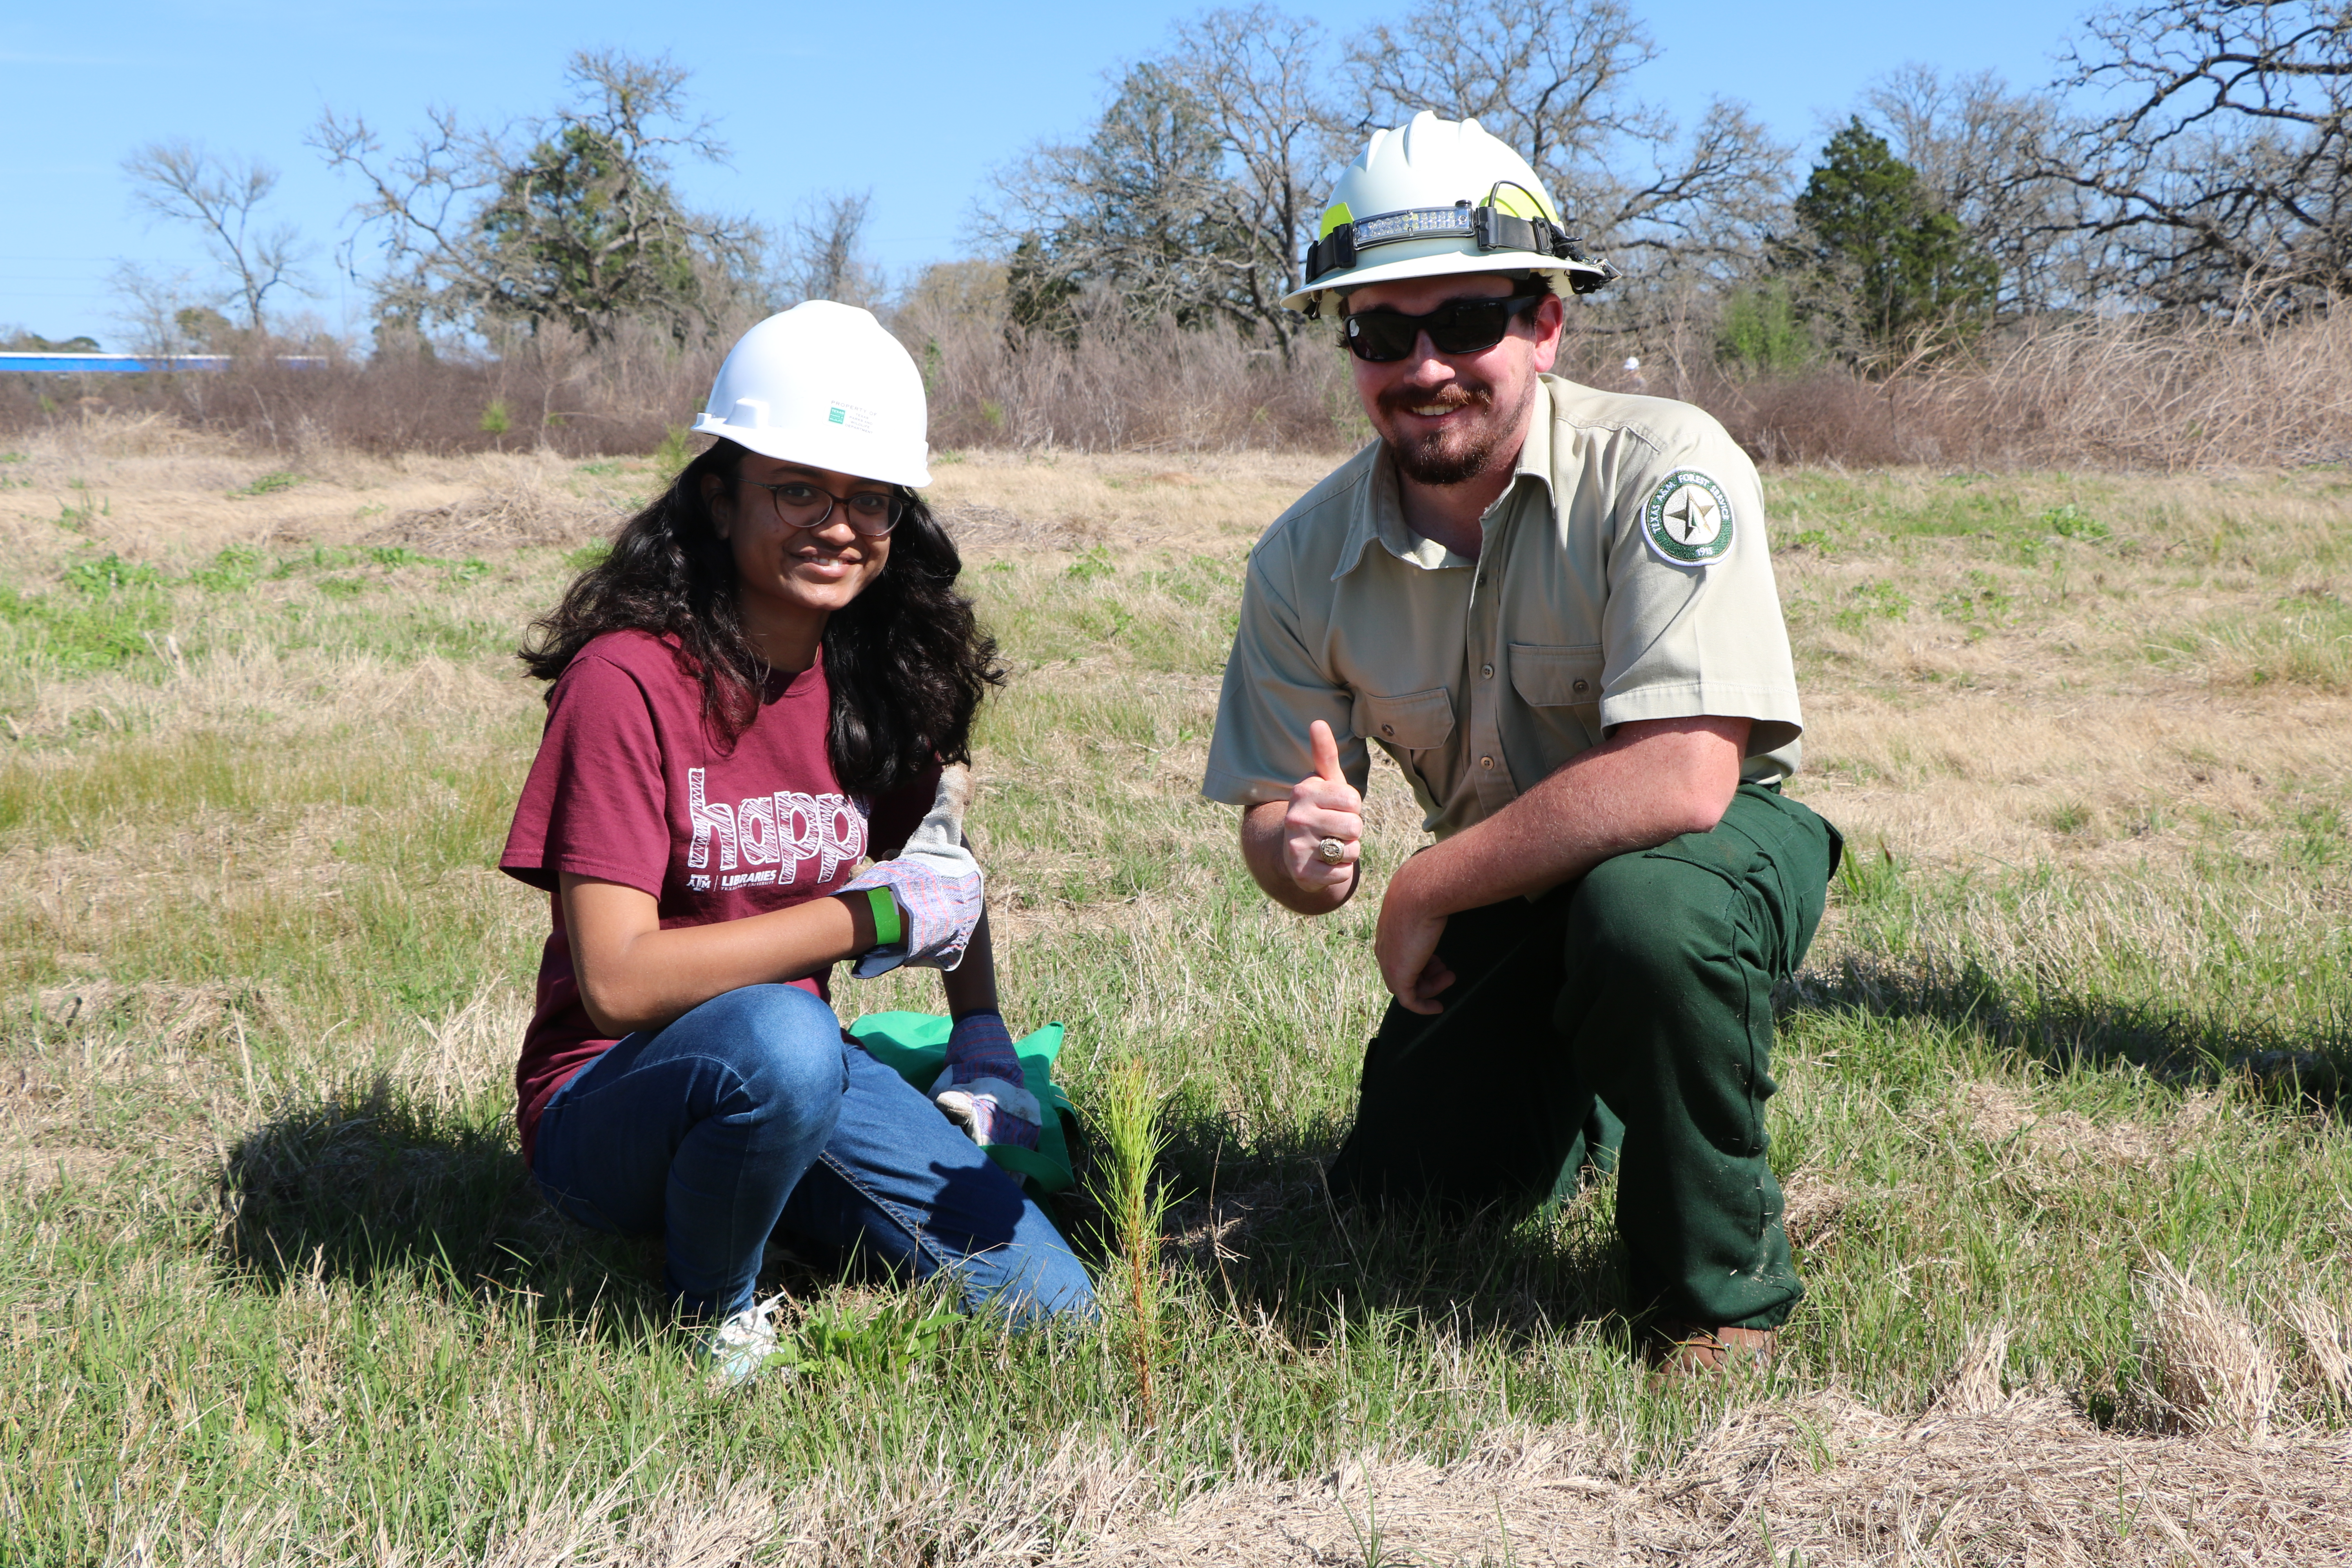 <p>Approximately 4,000 more trees are taking root in wildfire-scarred Texas soil this weekend thanks to the planting efforts of student volunteers from Texas A&amp;M University.</p>